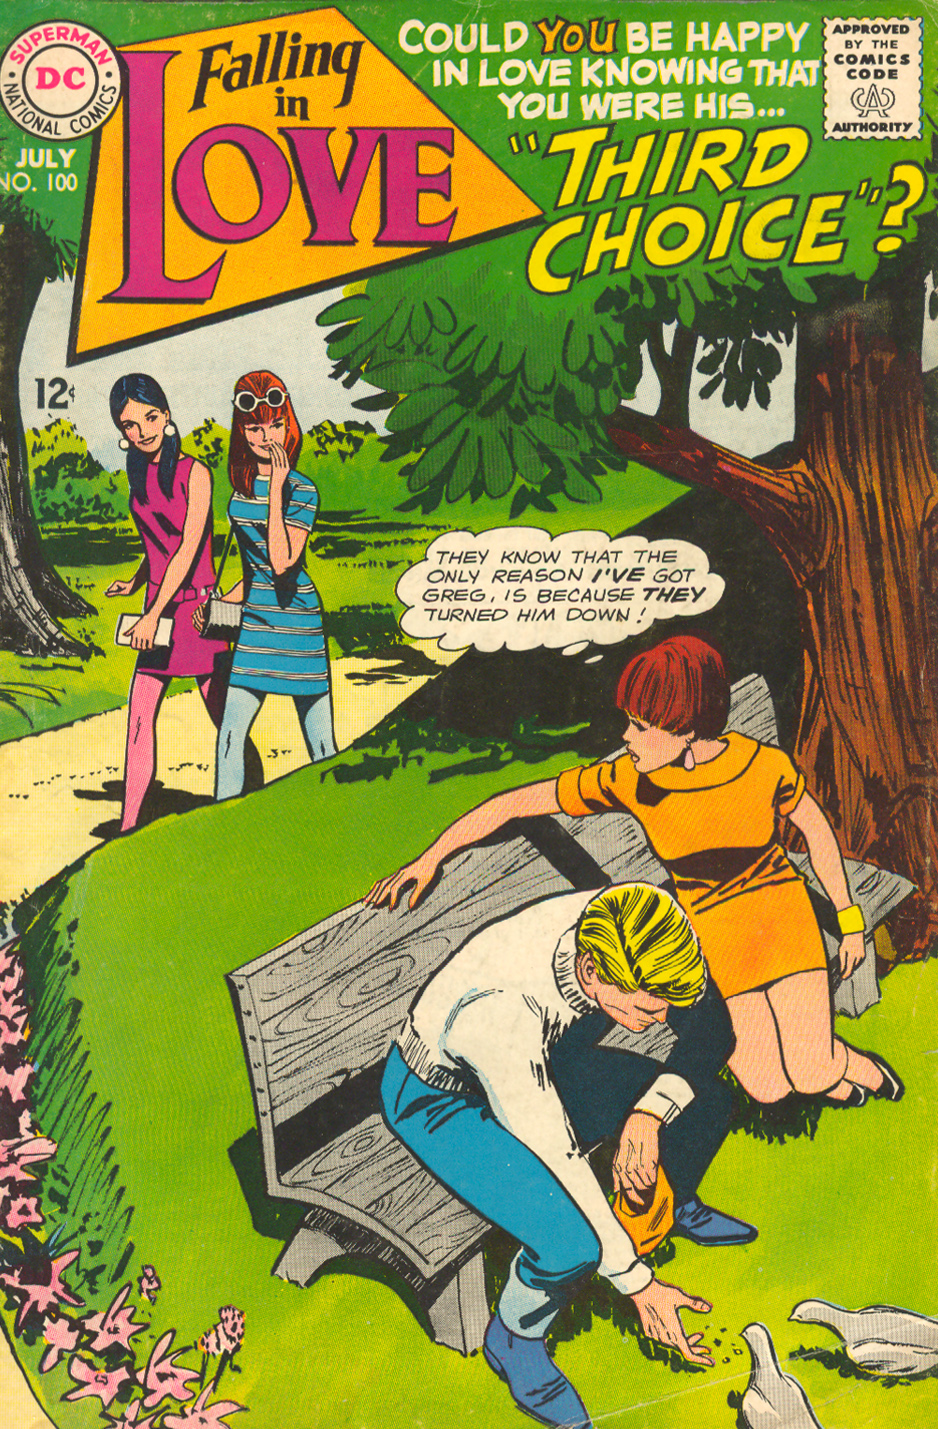 Falling in Love  #100 (July 1968)